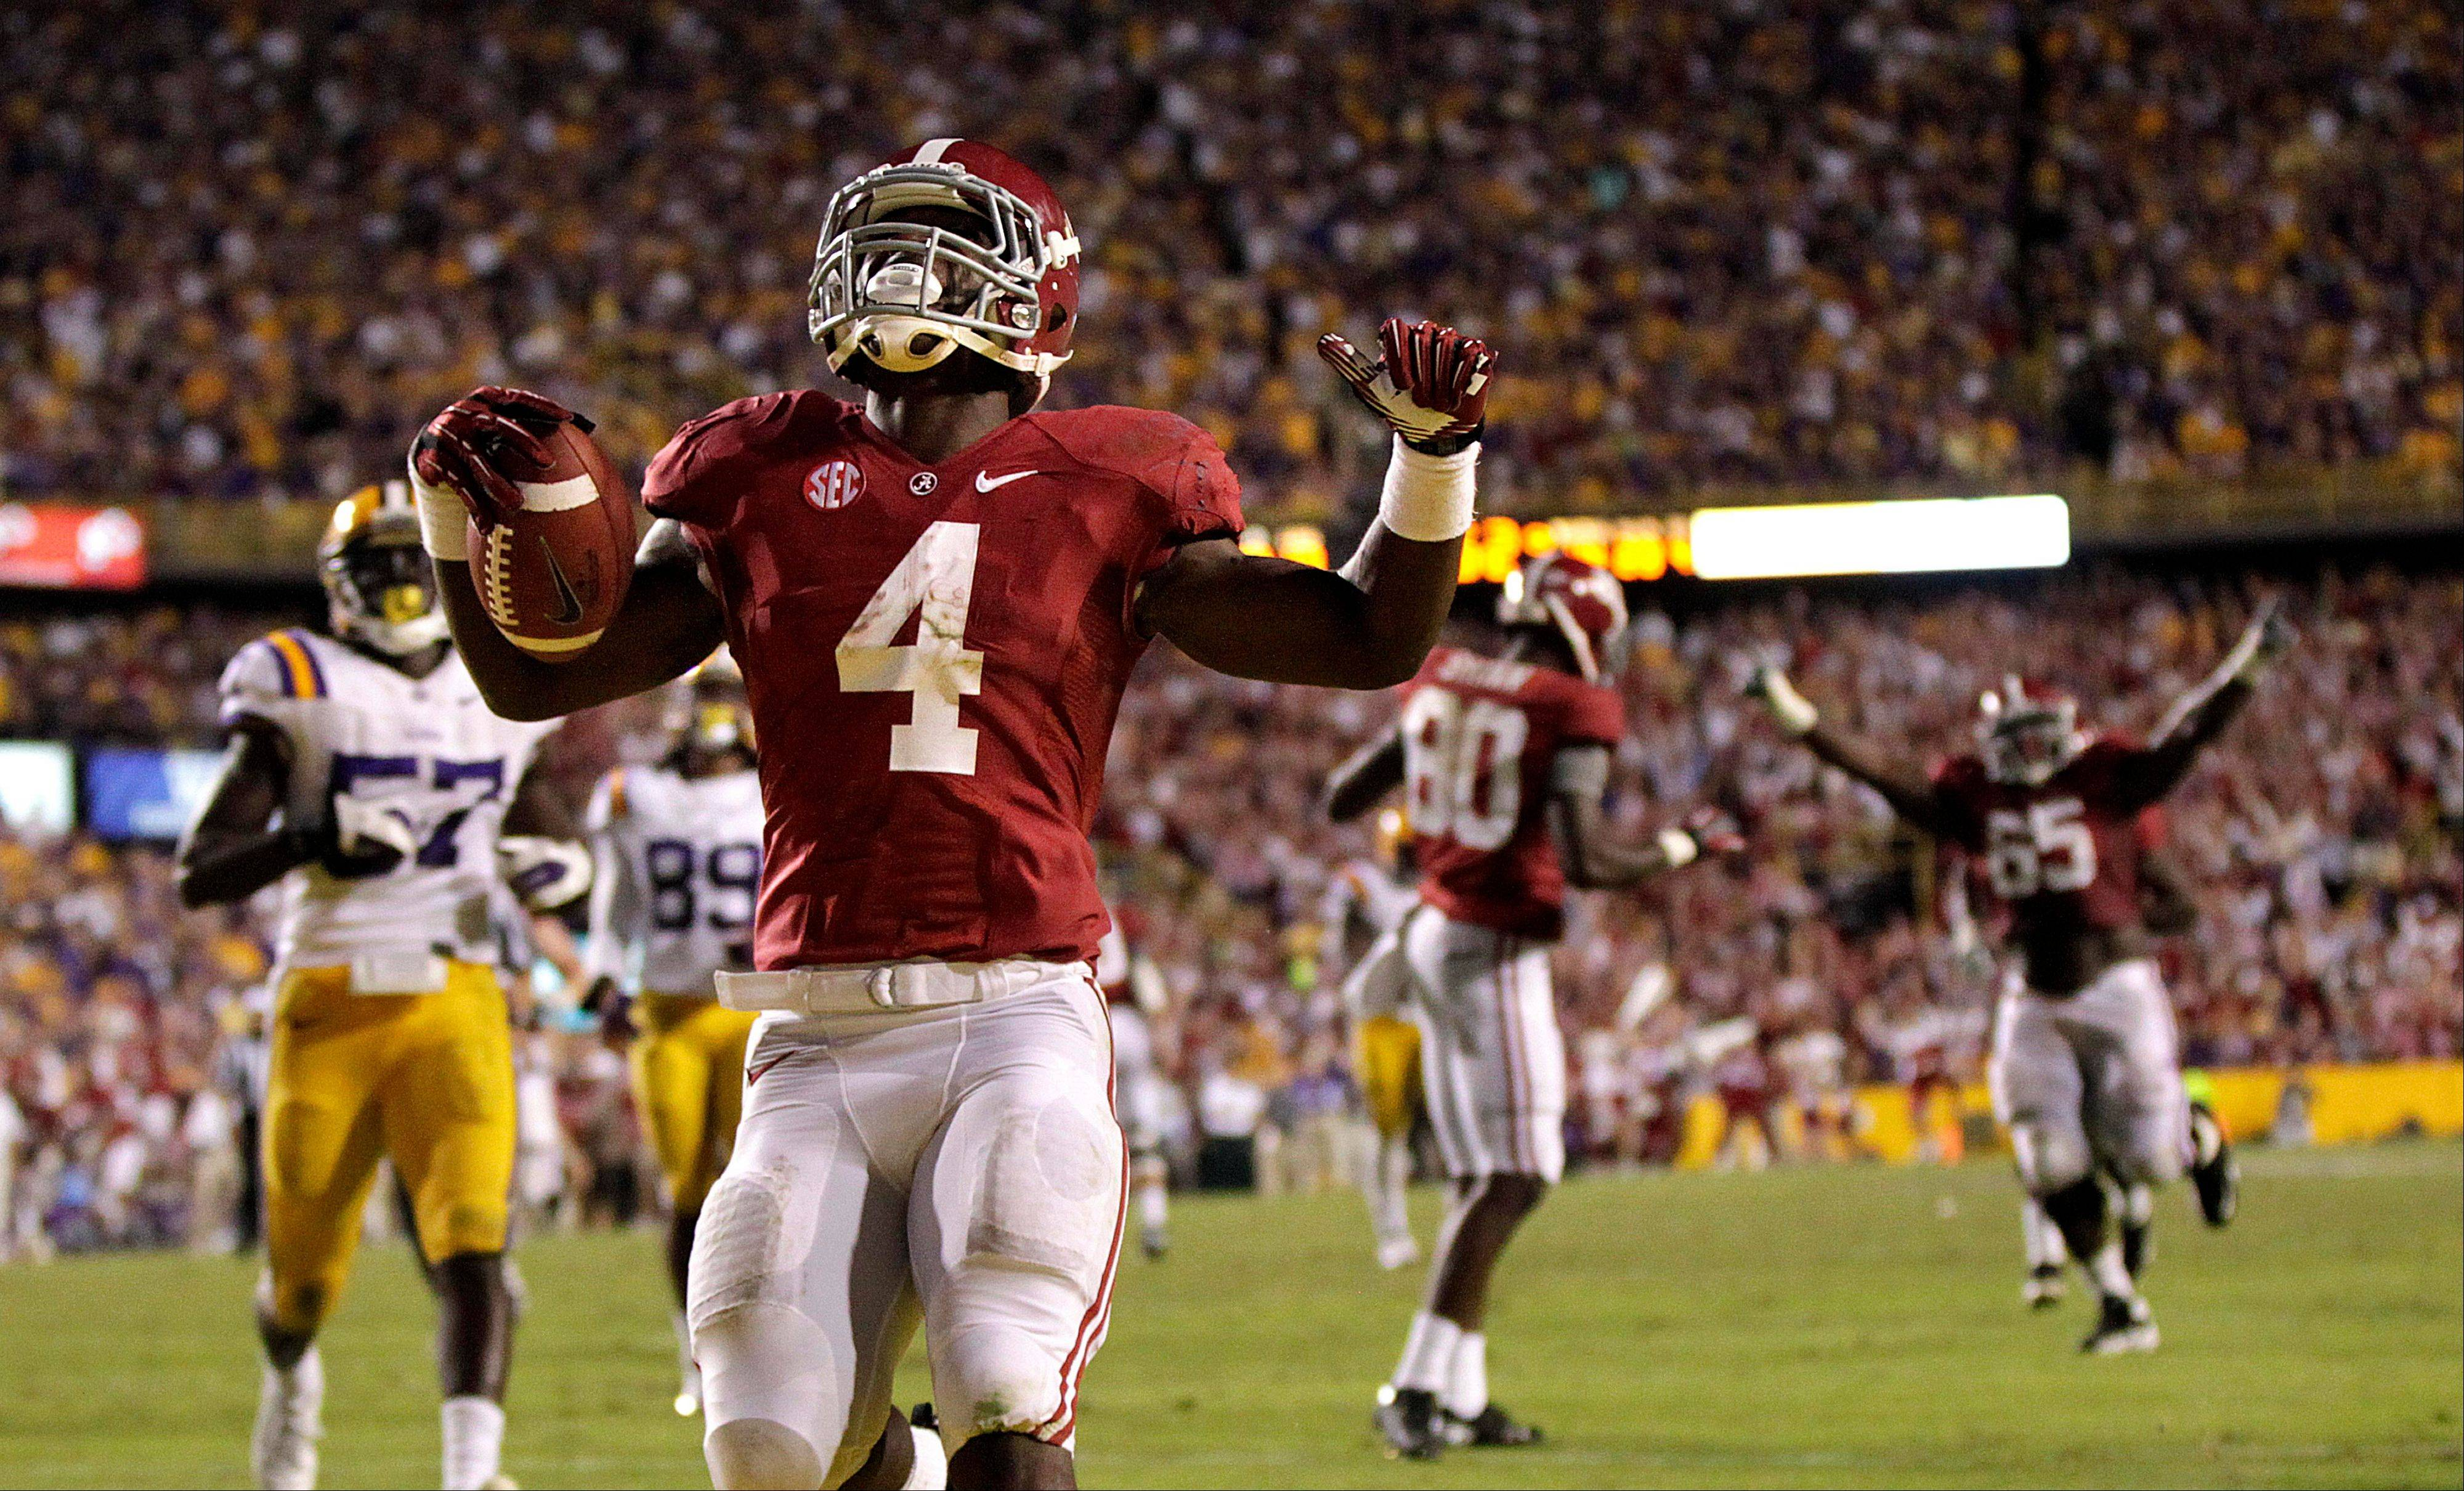 Alabama running back T.J. Yeldon scores the game winning touchdown past LSU defensive end Barkevious Mingo Saturday in the fourth quarter in Baton Rouge, La. Alabama won 21-17.